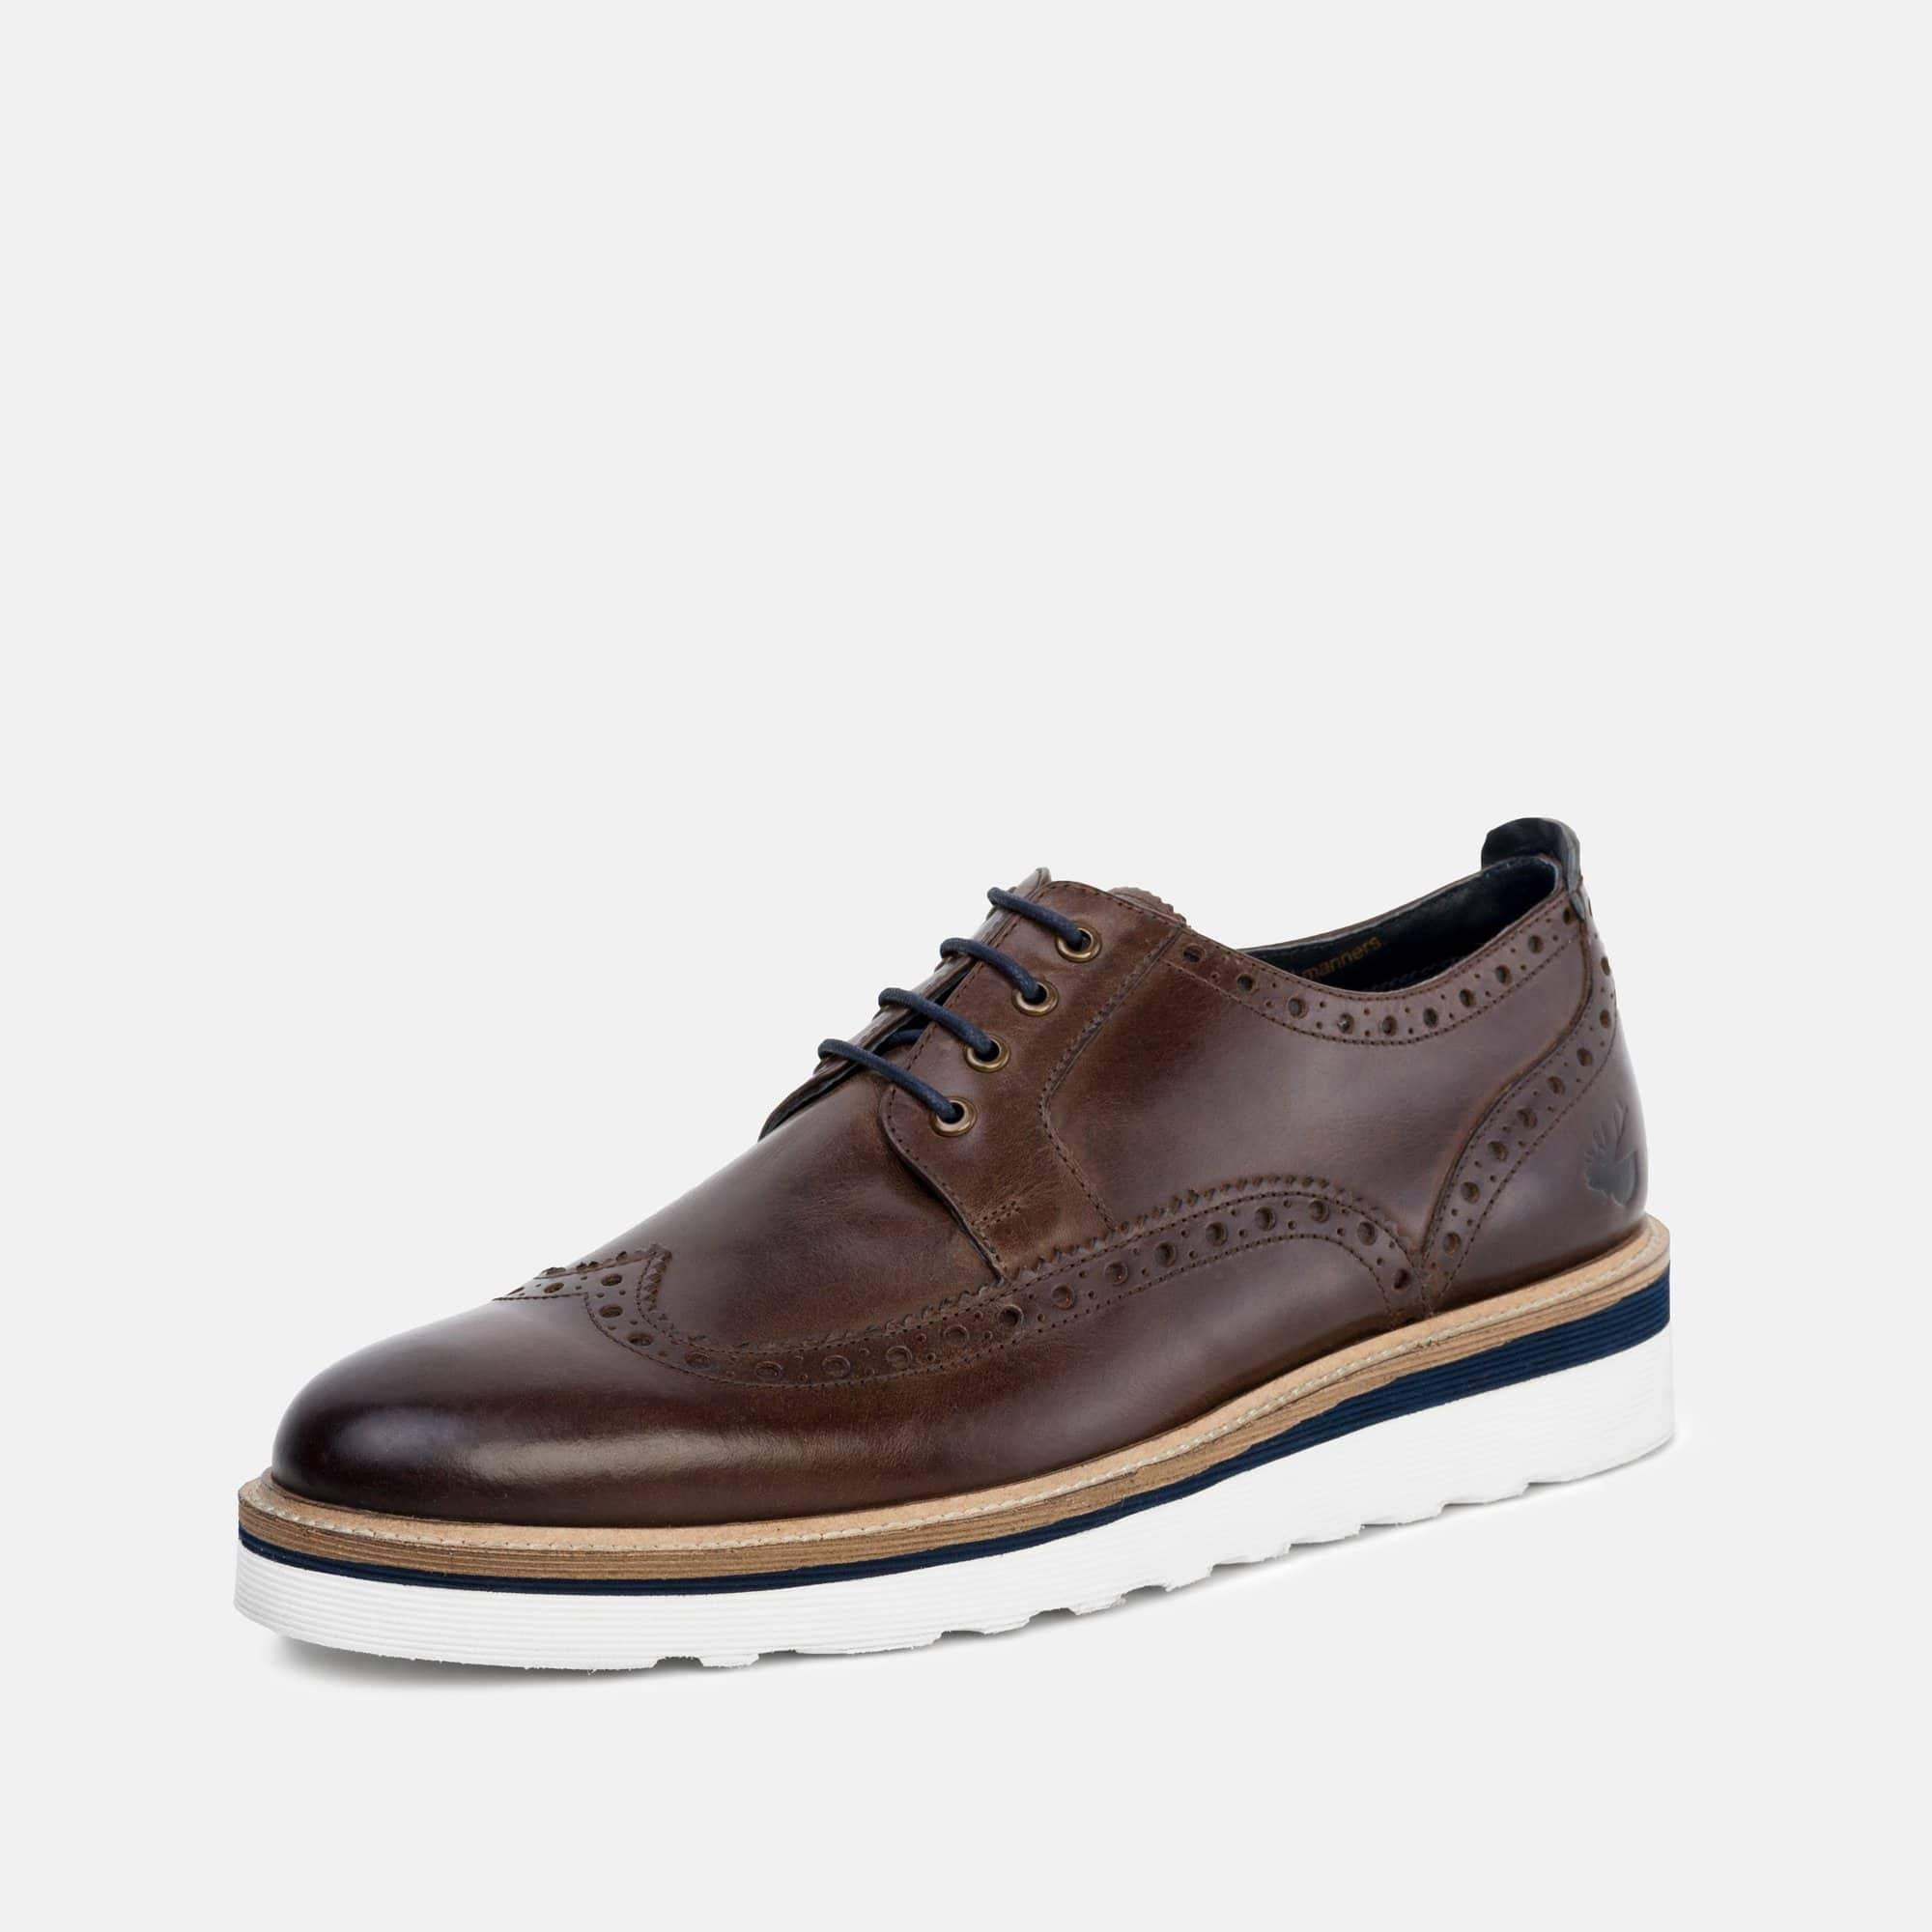 Goodwin Smith Footwear Ripley Brown Casual Leather Brogue Shoe